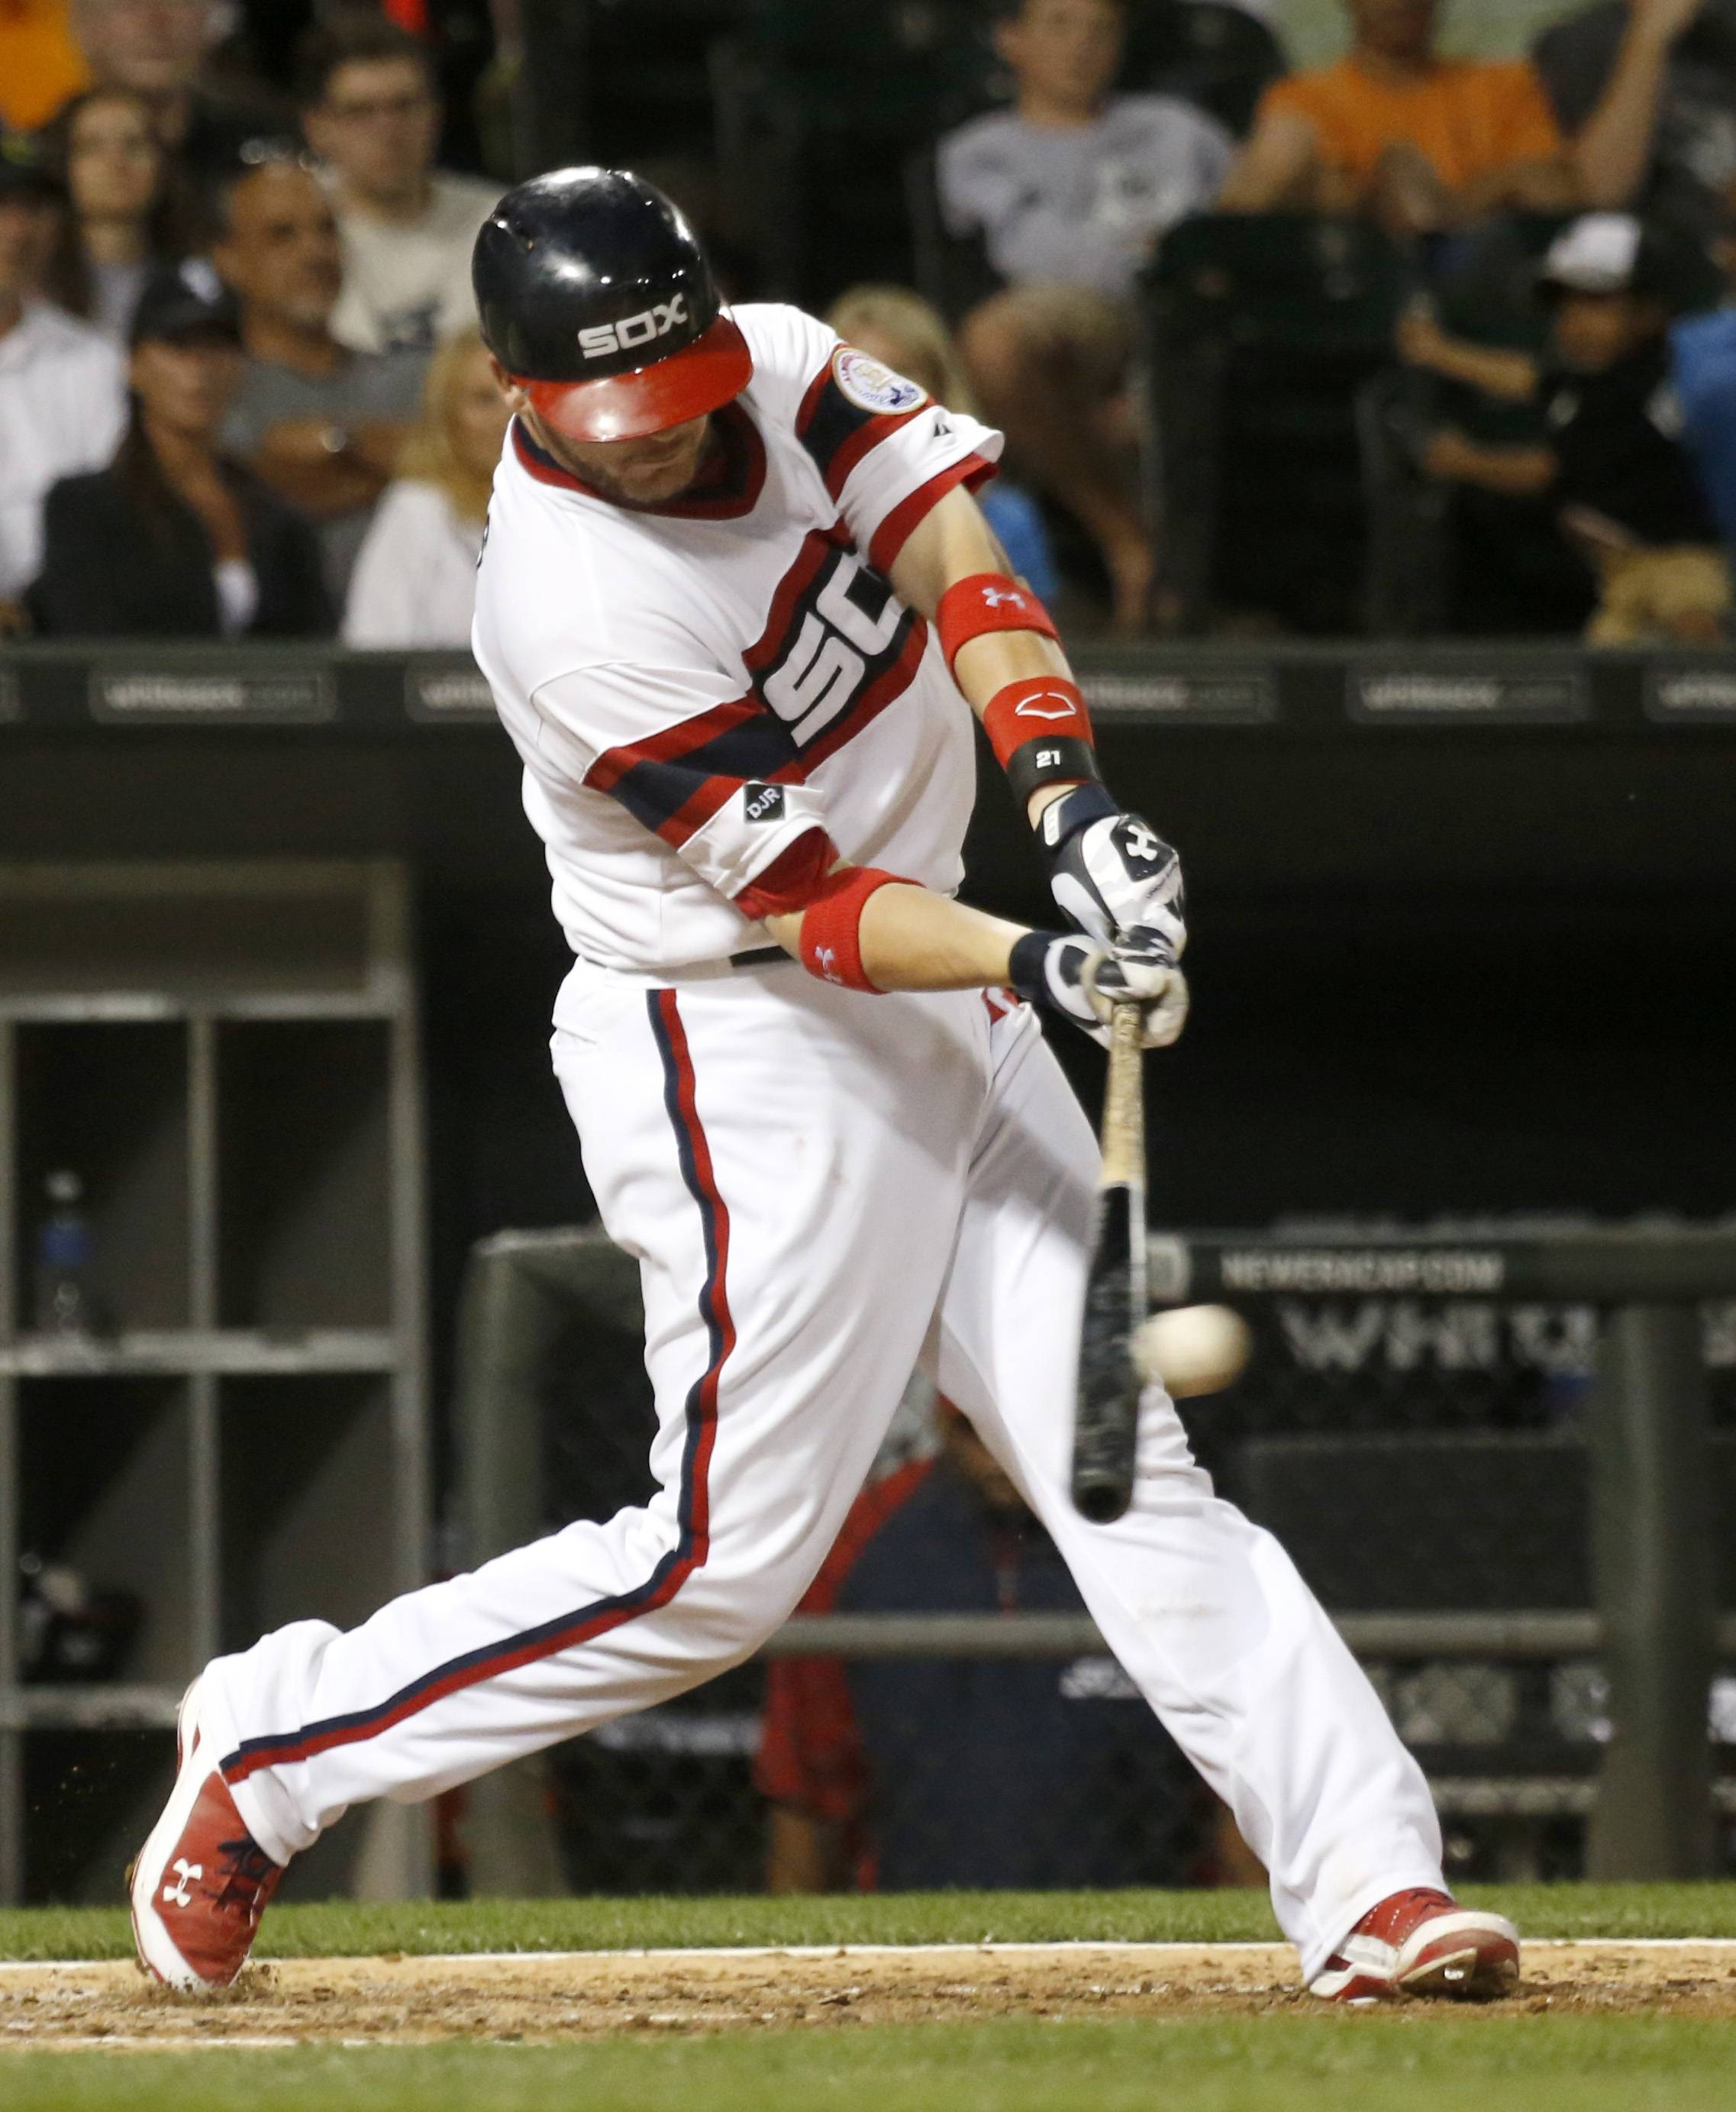 Tyler Flowers delivers an RBI double that proves to be the game-winning hit in the White Sox' win over the Astros on Friday at U.S. Cellular Field.